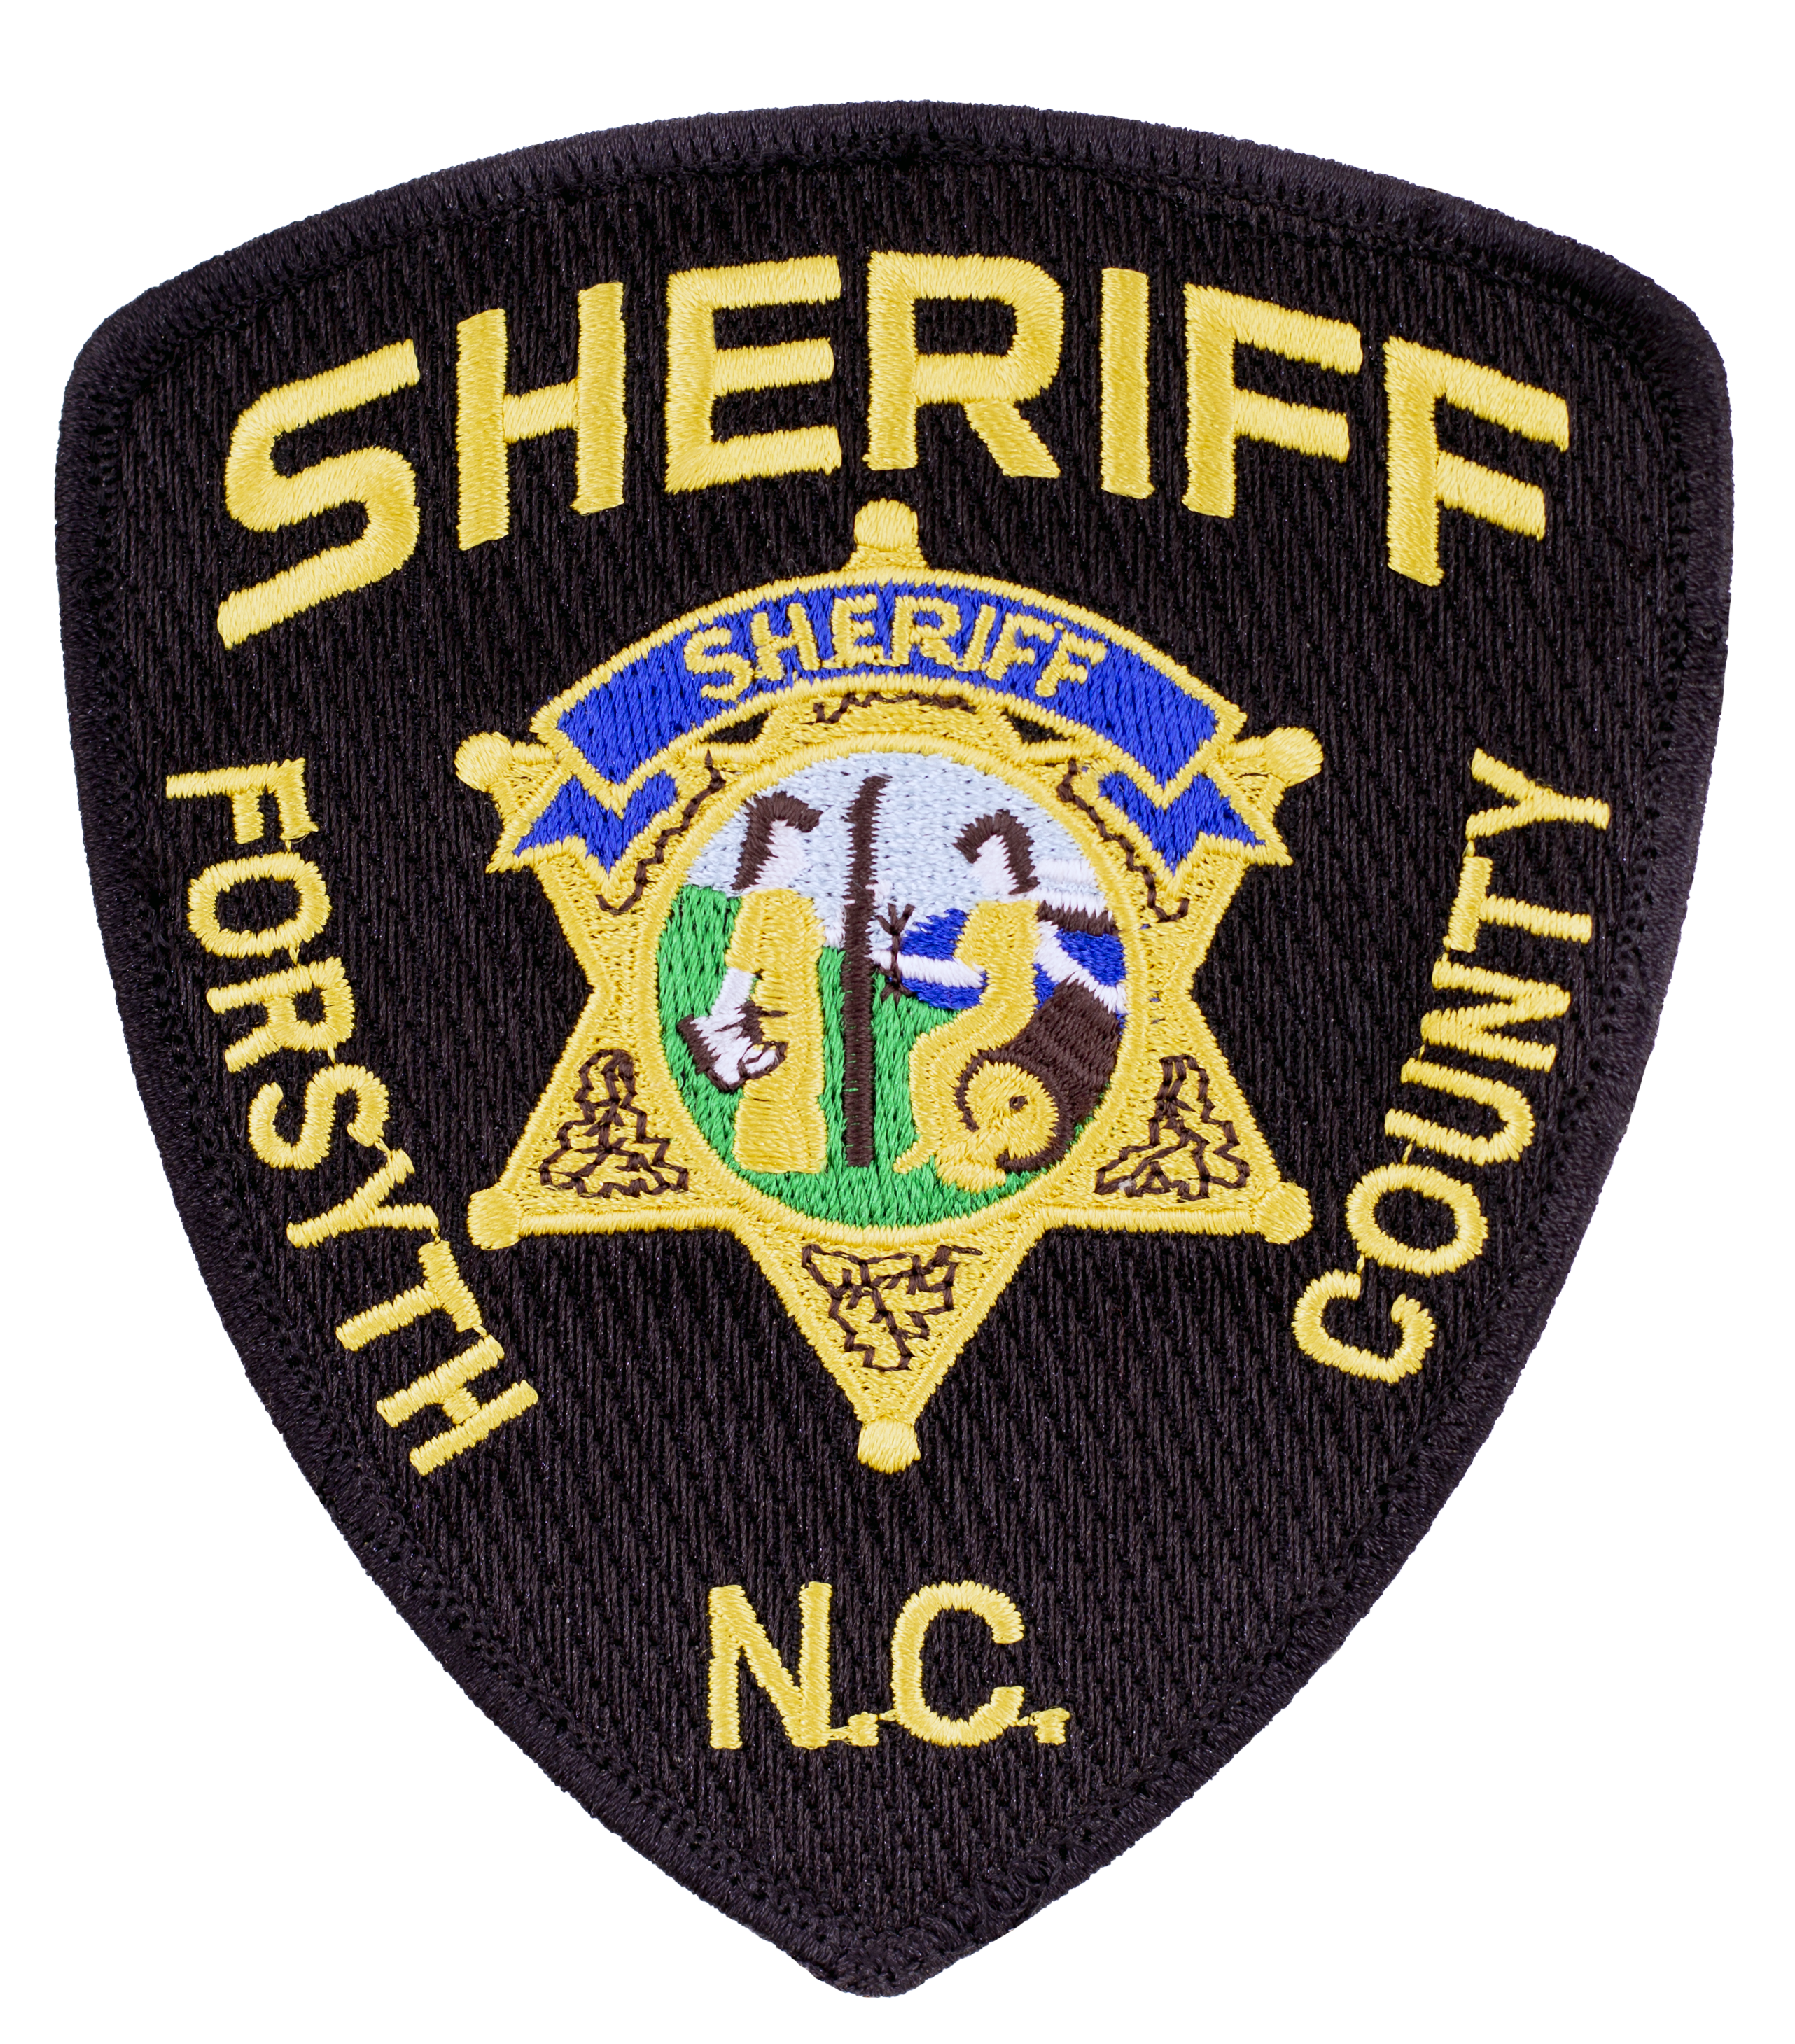 forsyth-county-sheriffs-office-piedmont-triad